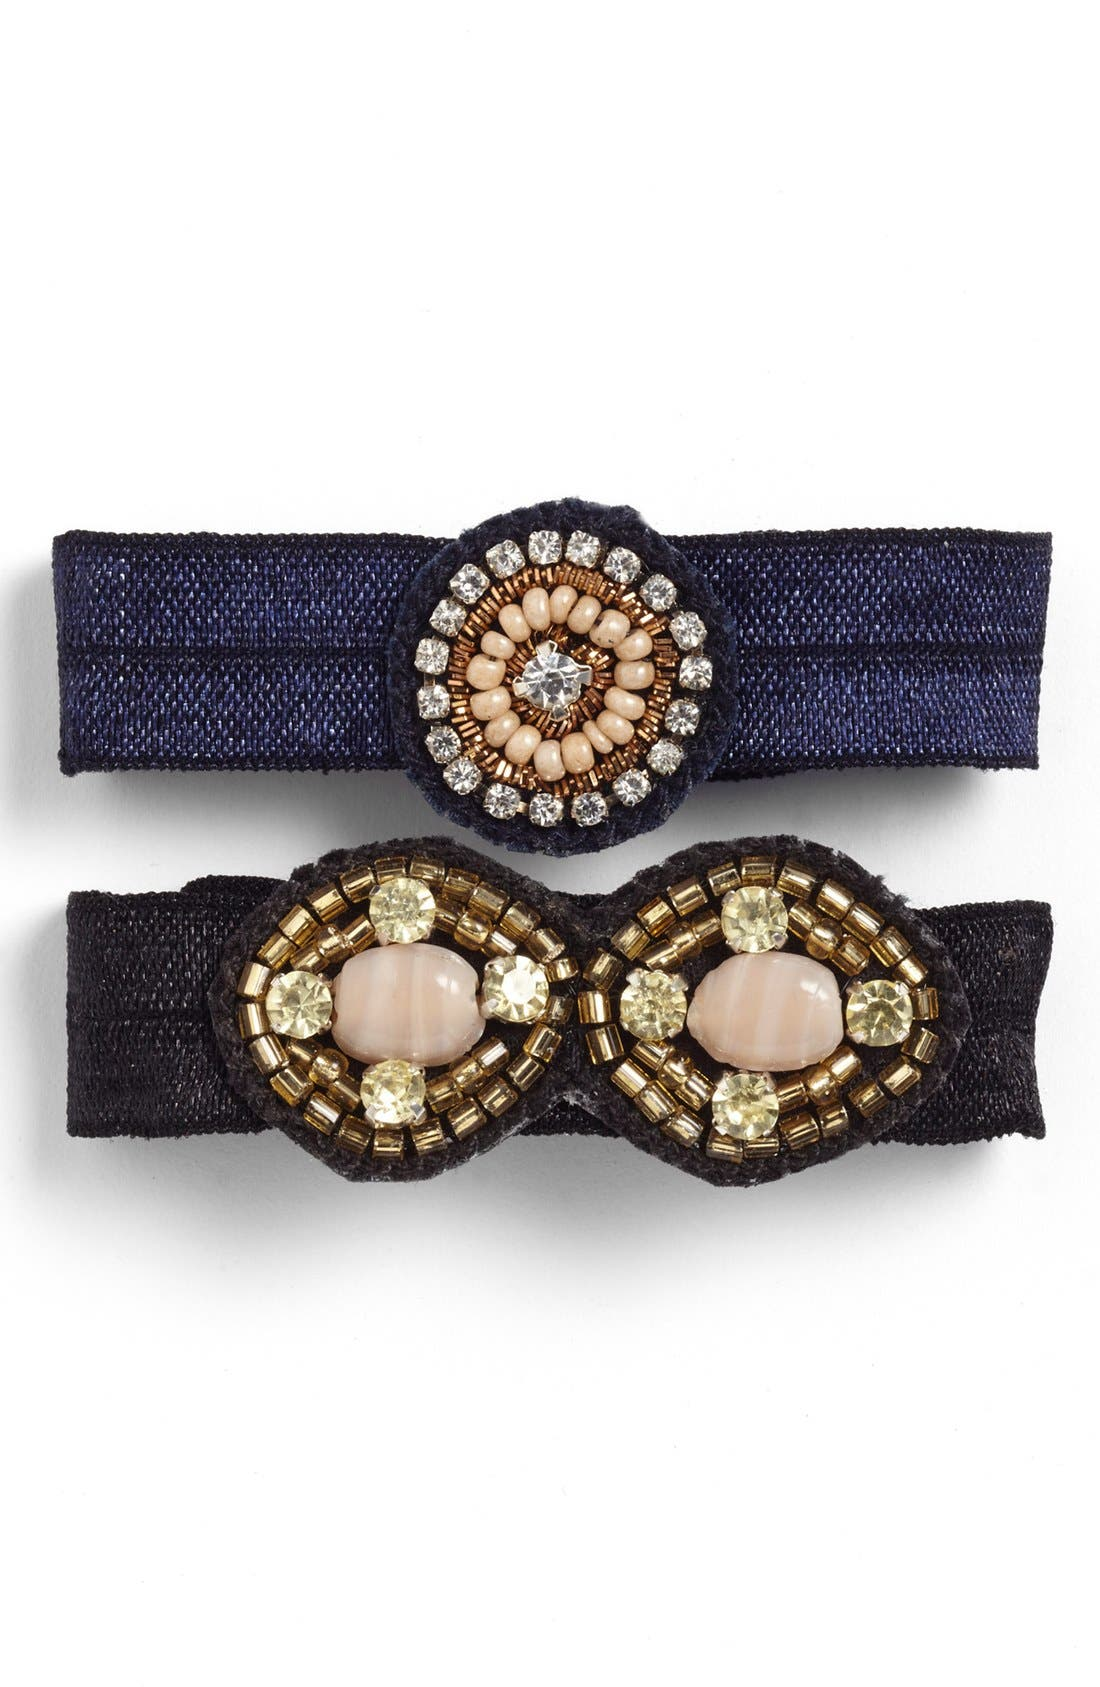 Main Image - Berry 'Antique Jewel' Ponytail Holders (Set of 2)